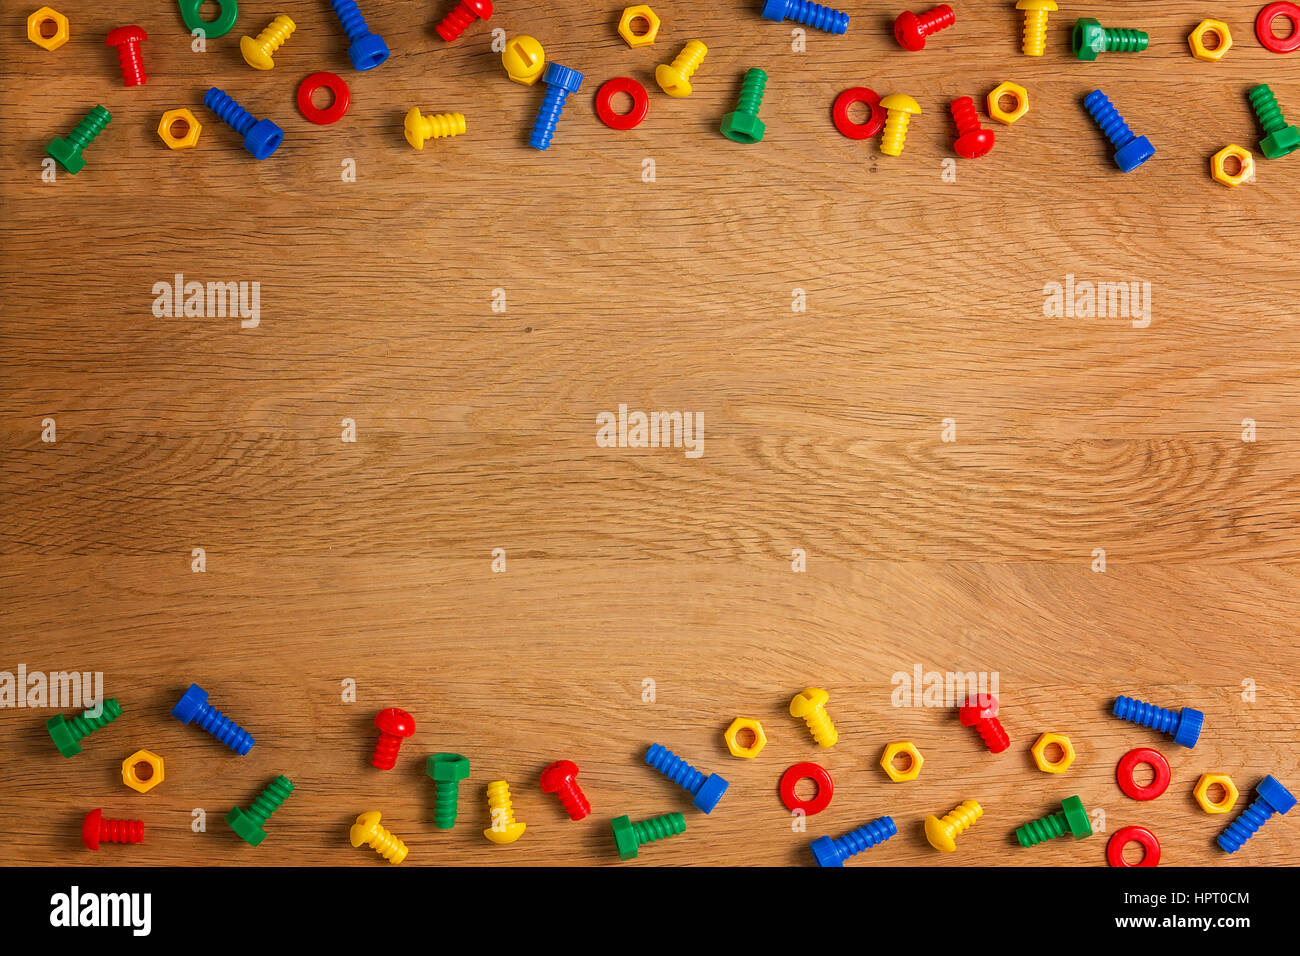 Kids Toys Tools Colorful Screws And Nuts On Wooden Background Top